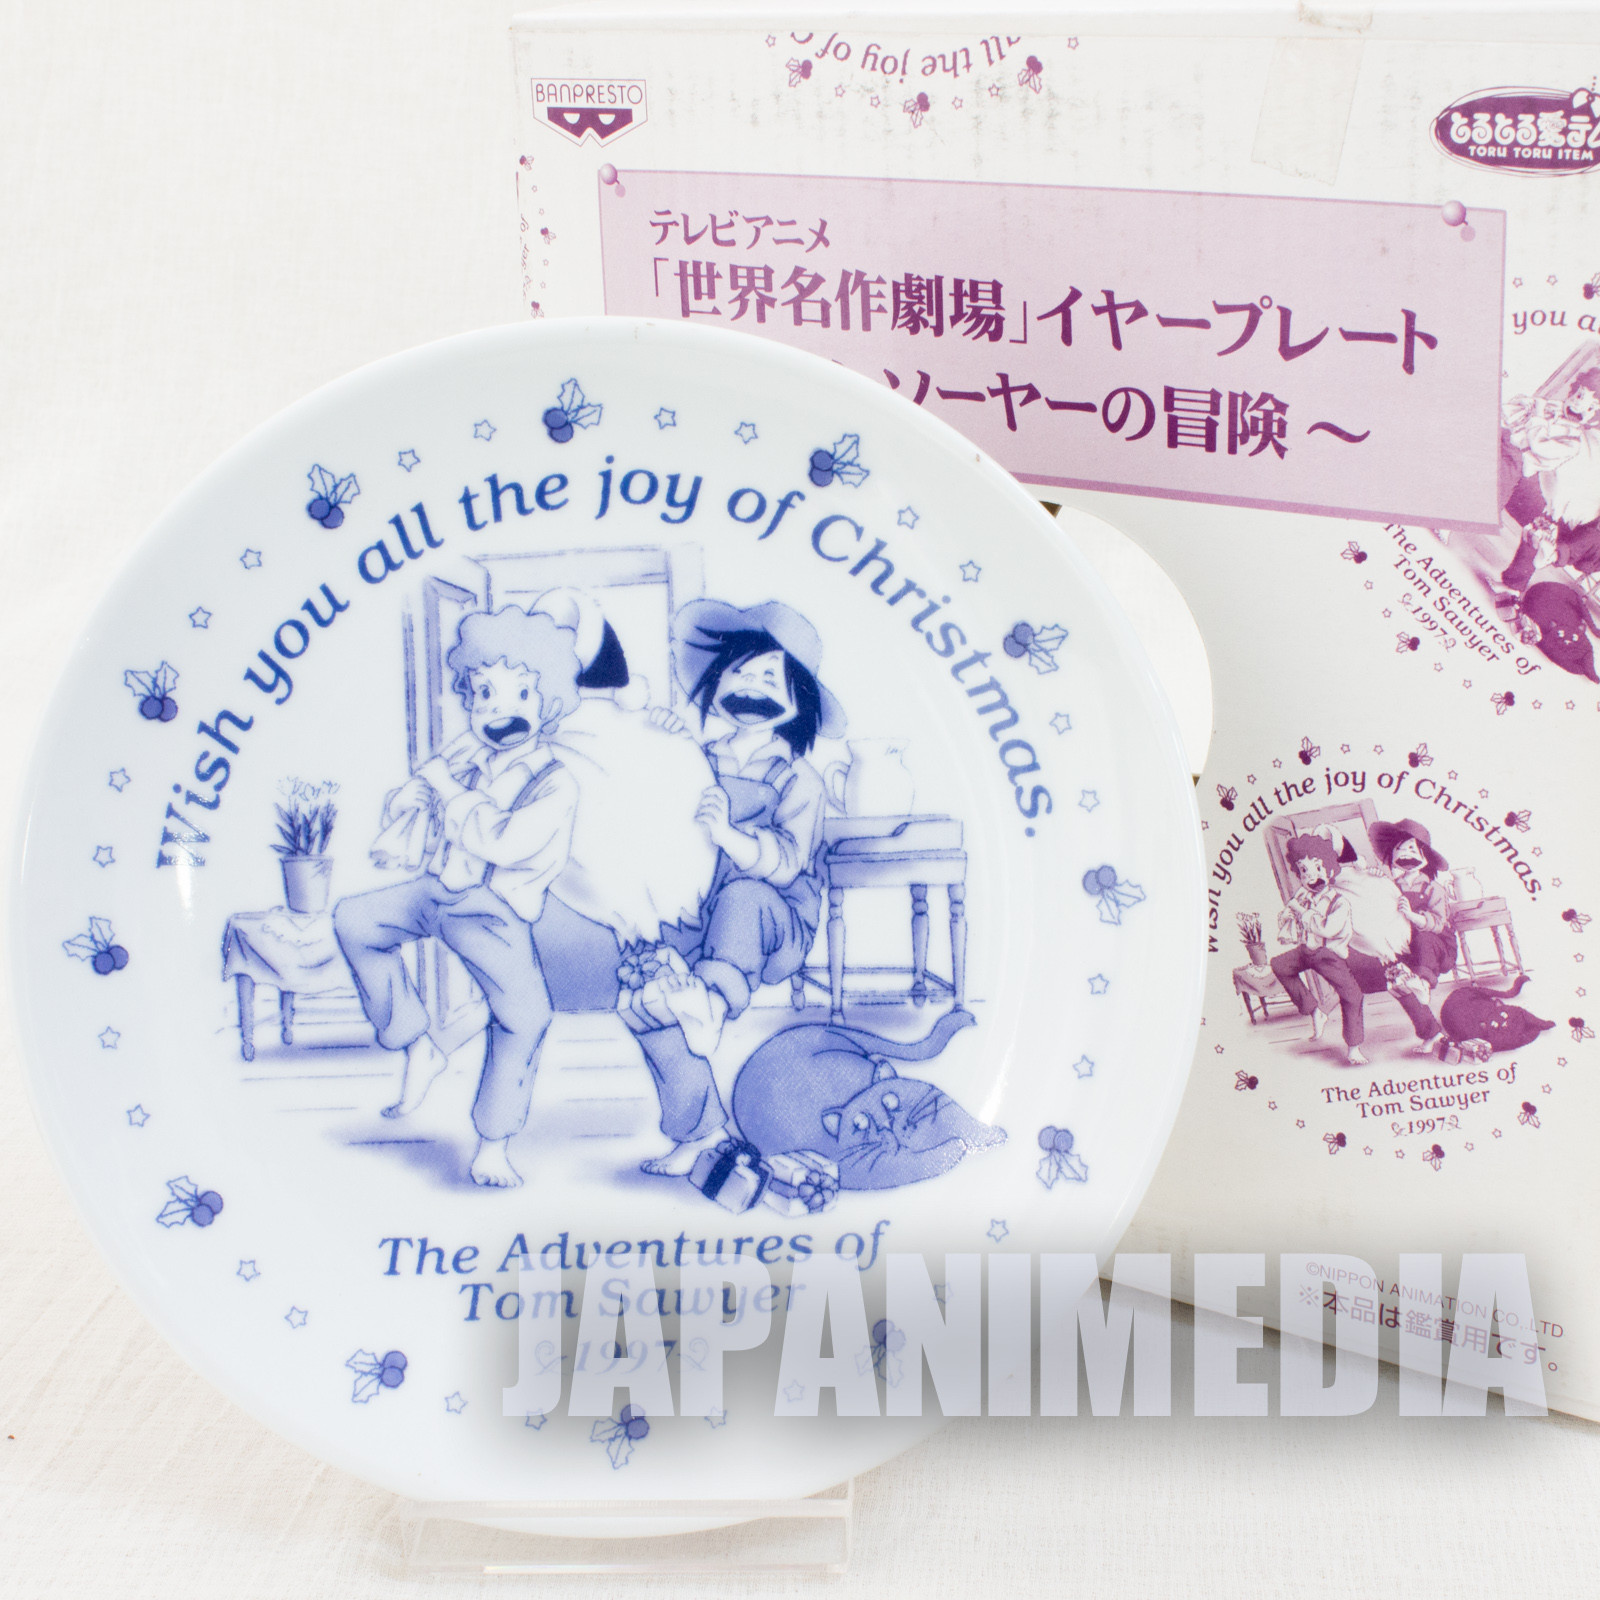 The Adventures of Tom Sawyer Picture Year Plate JAPAN ANIME MANGA